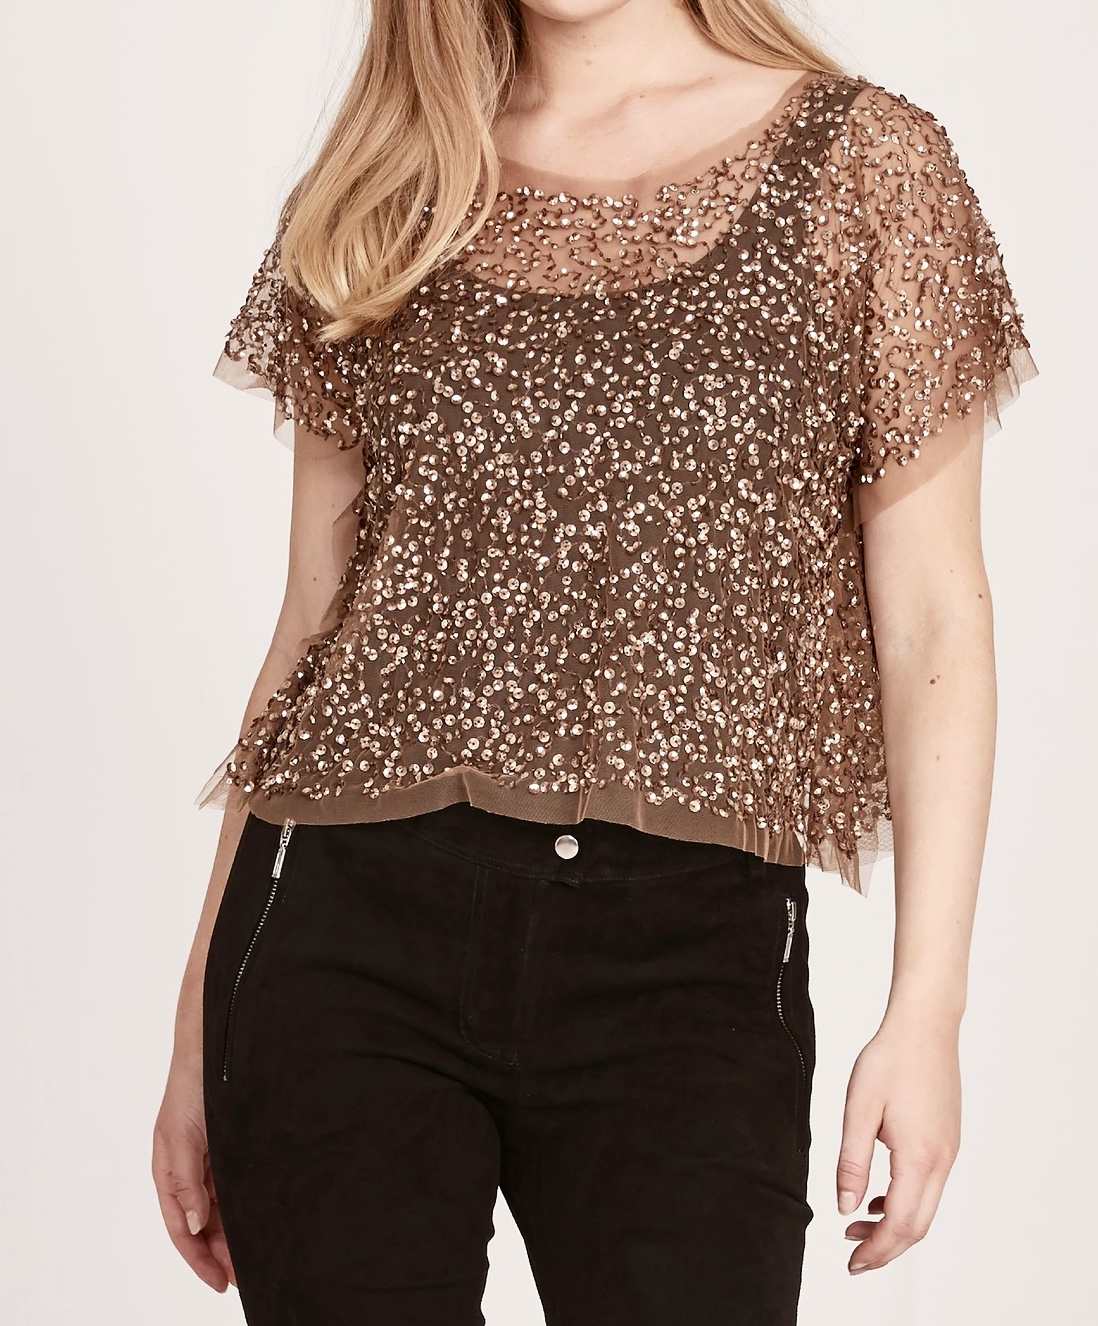 NÜ DANMARK EMMA TOP WITH SEQUINS IMAGE BY ME